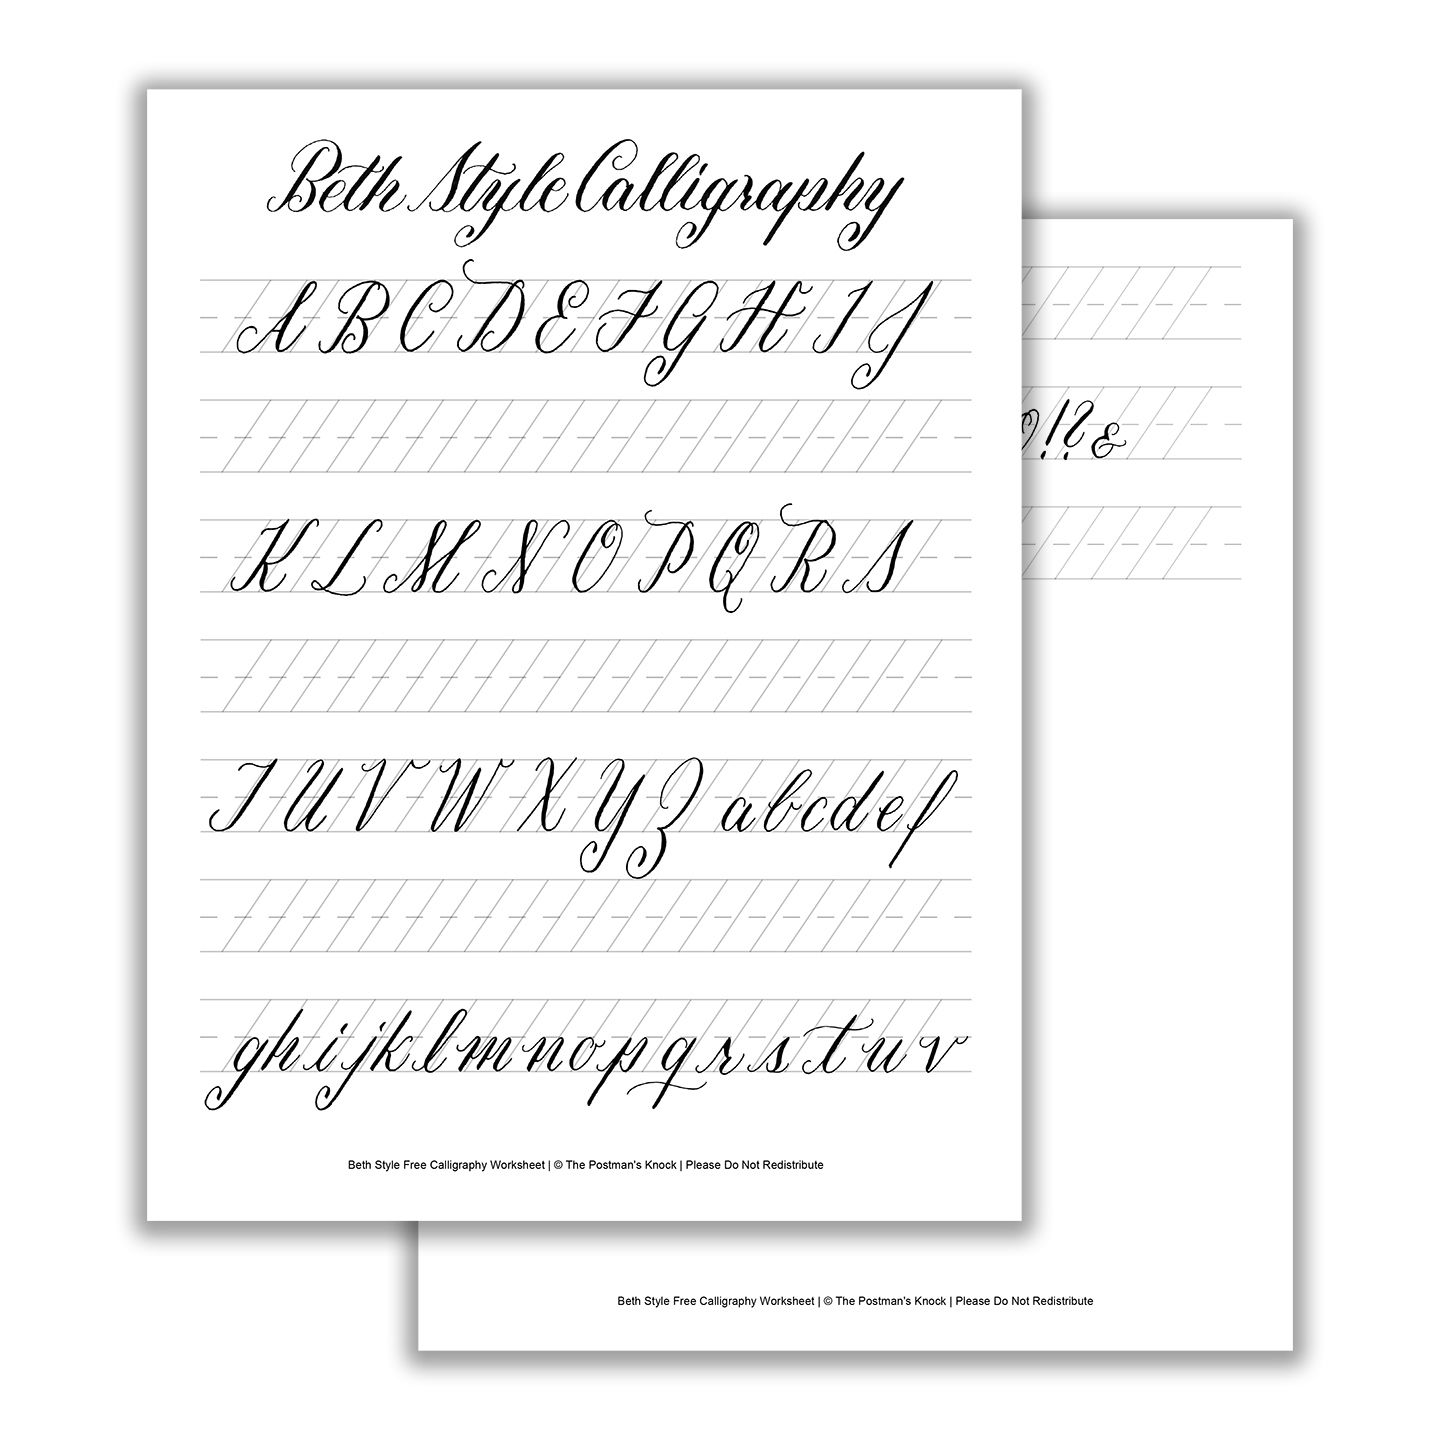 Beth Style Calligraphy Standard Worksheet The Postman S Knock Calligraphy Worksheet Basic Calligraphy Faux Calligraphy